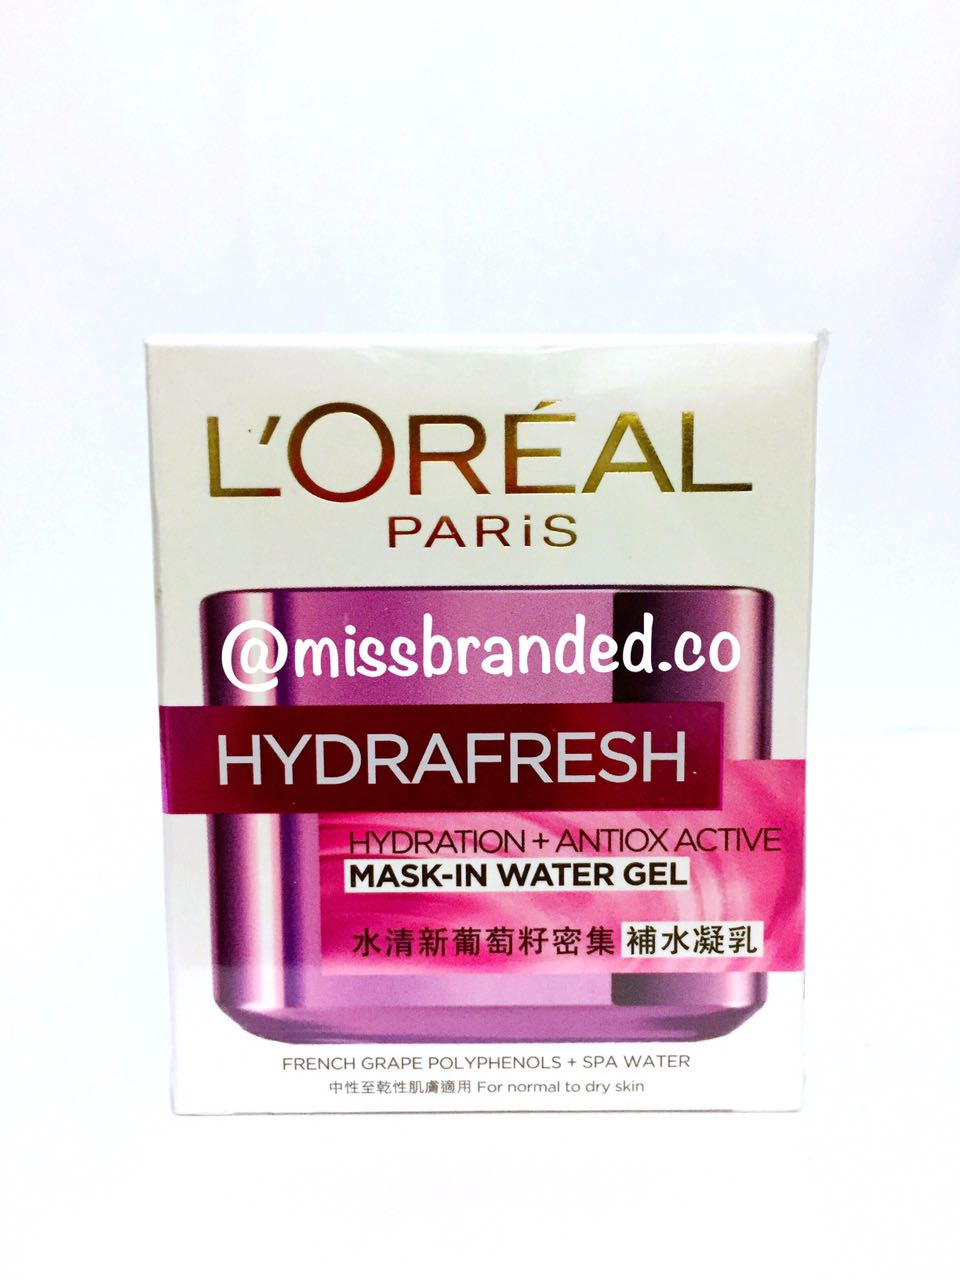 Loreal Paris Hydrafresh Hydration Antiox Active Mask In Water Gel 50ml